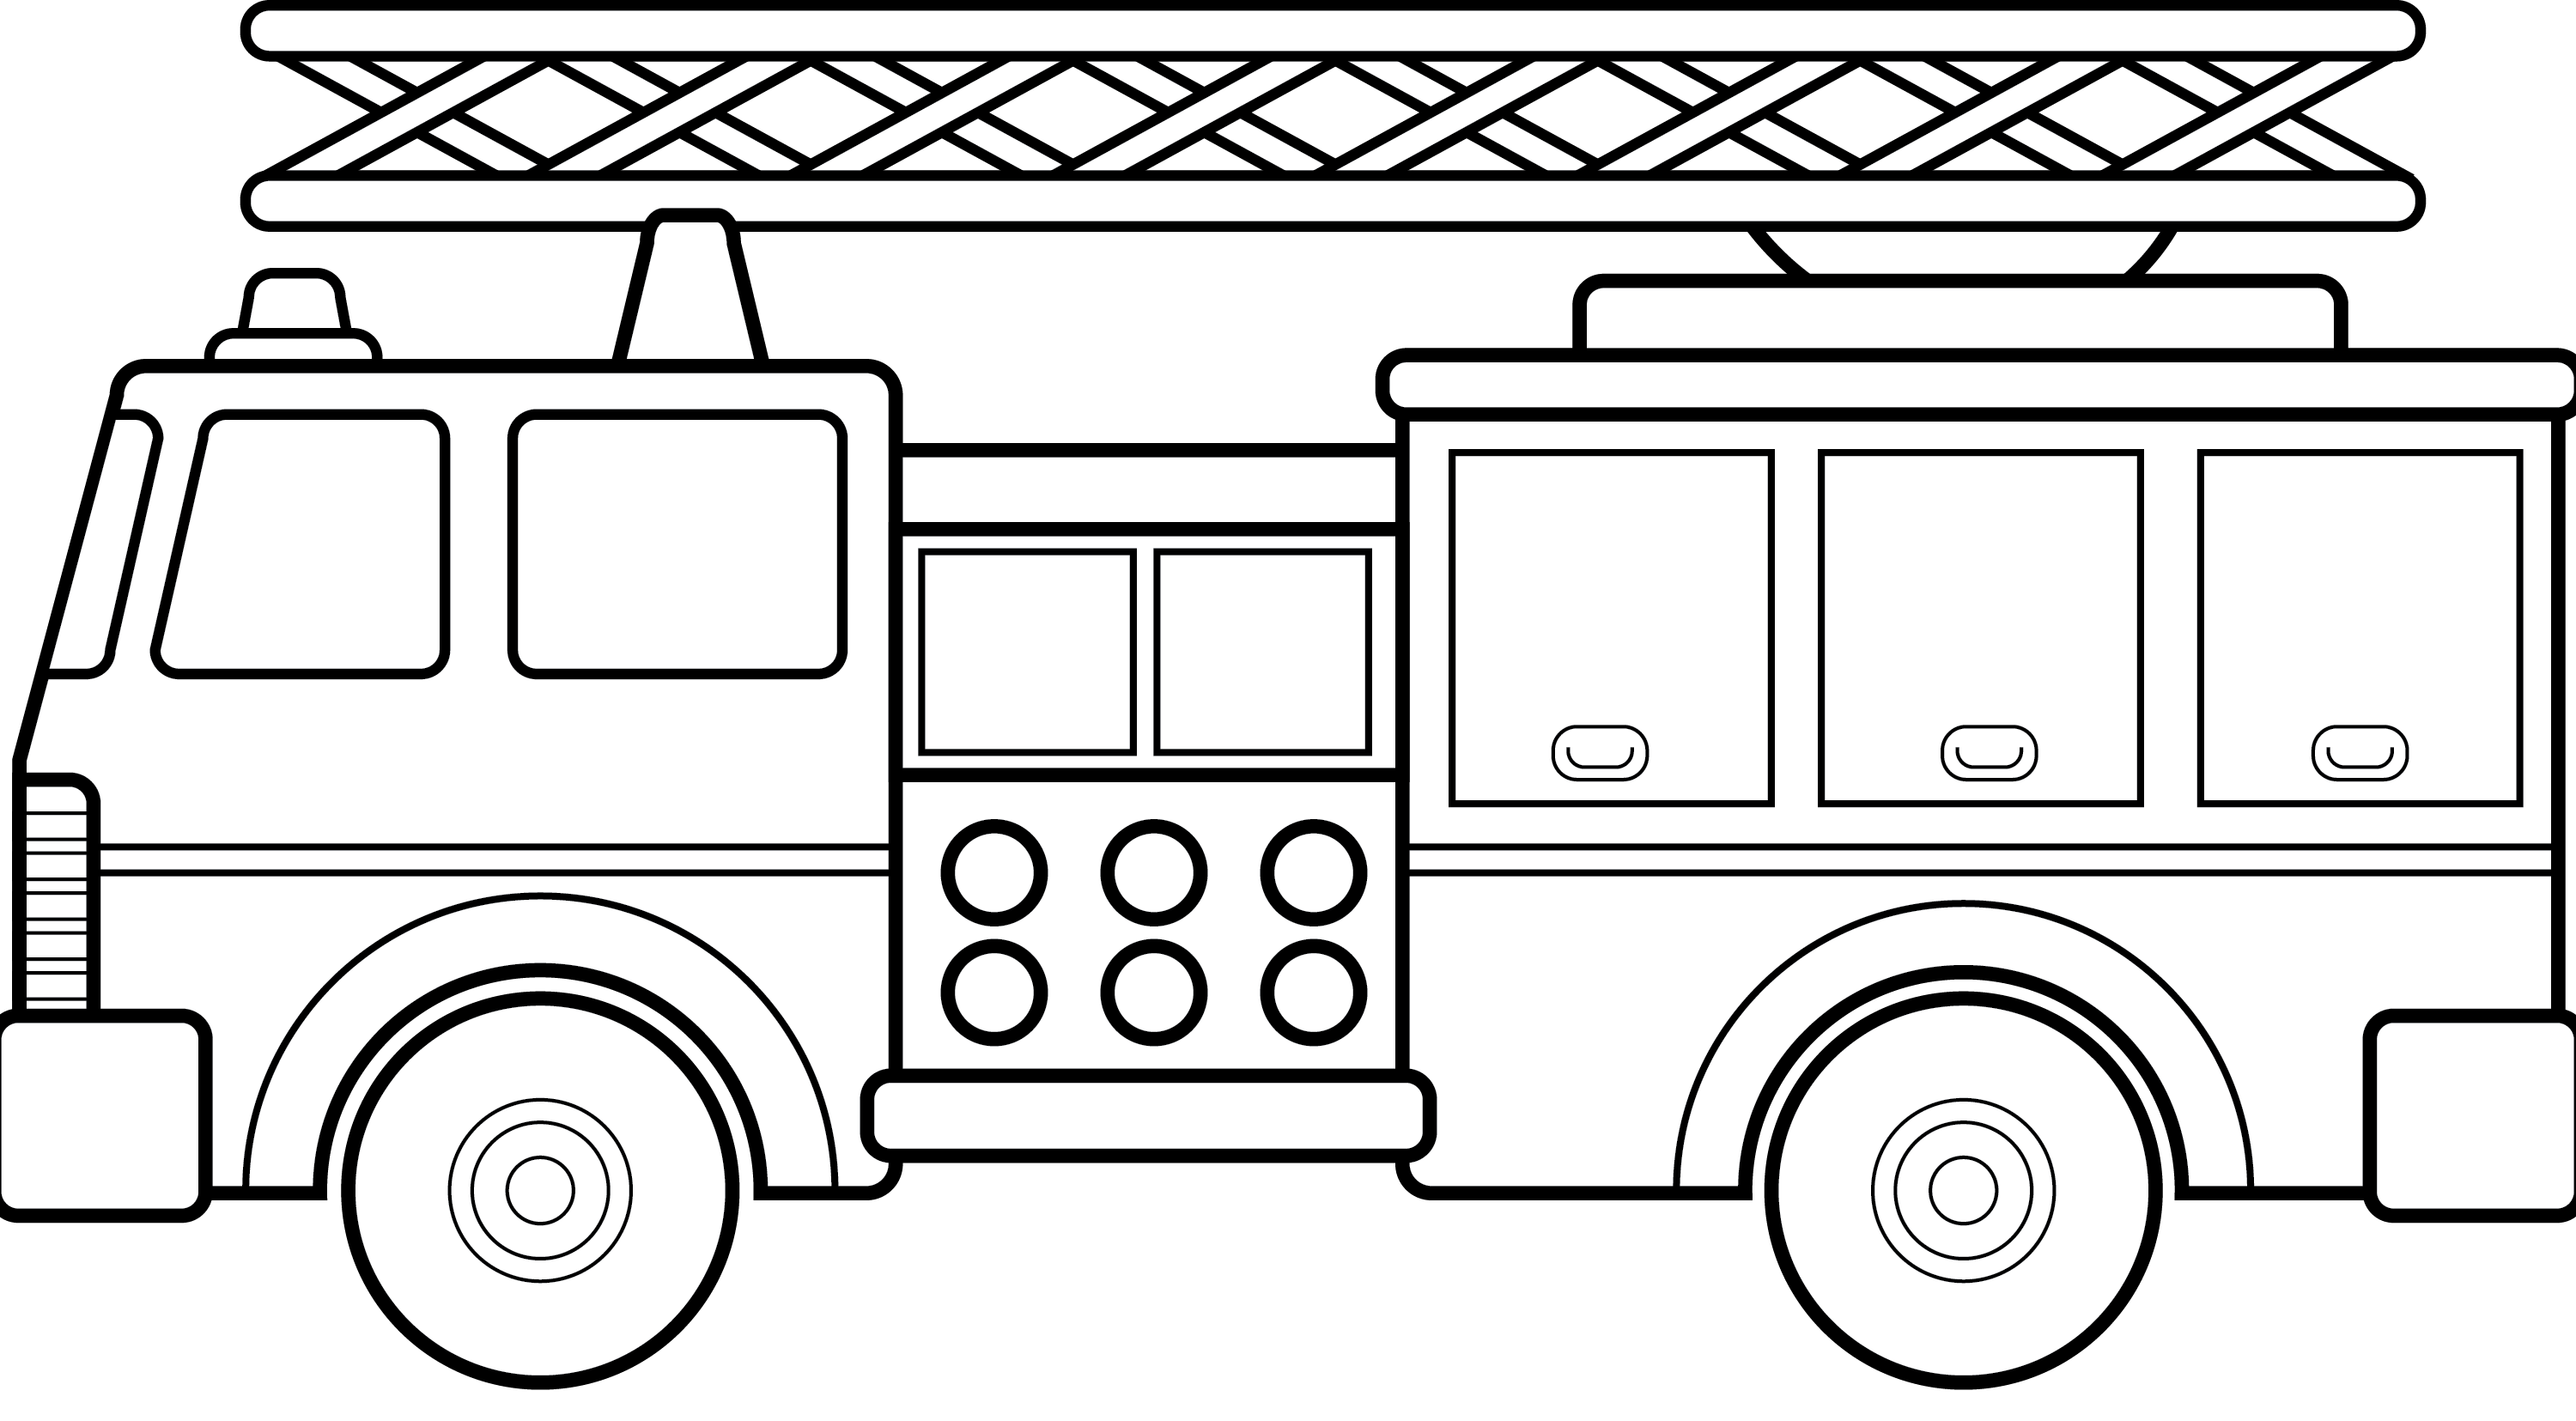 Firetruck fire truck clip art black and white use these free images.